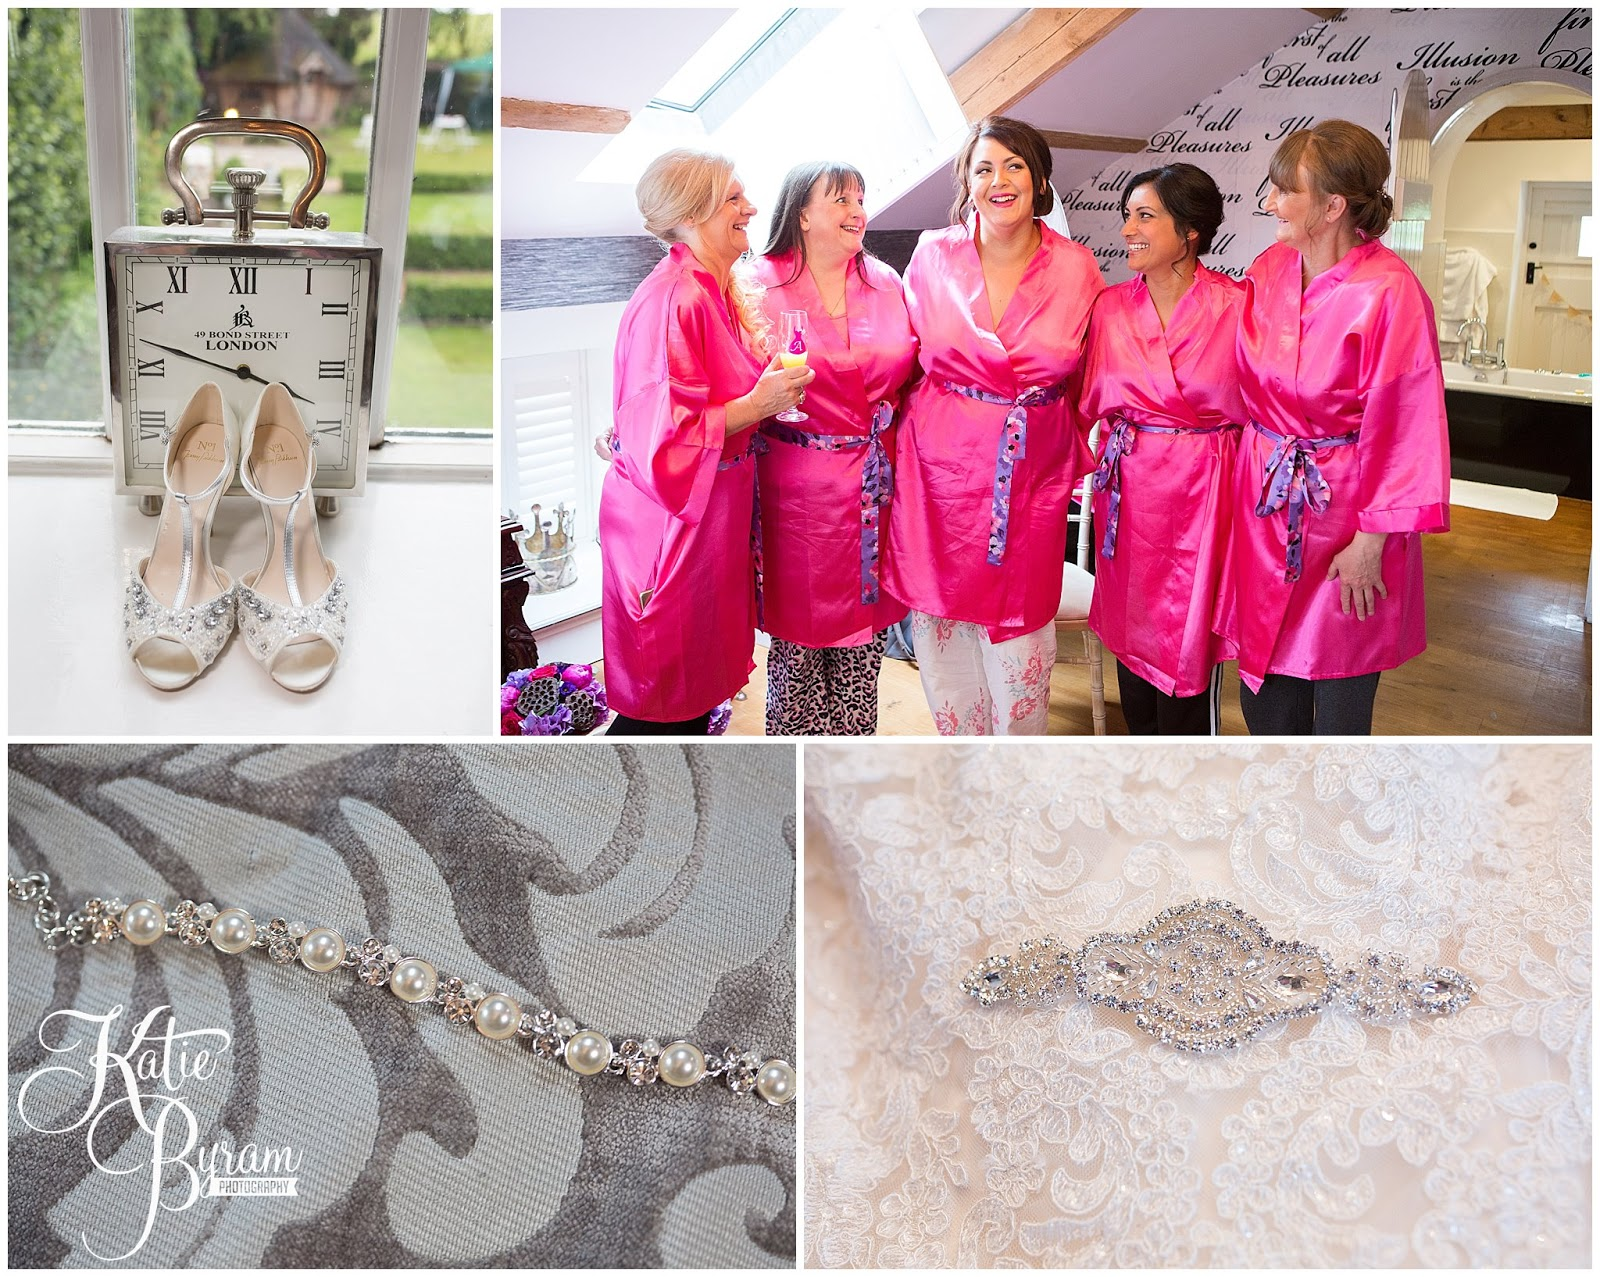 Katie Byram Photography » Fun & relaxed female wedding photographer ...